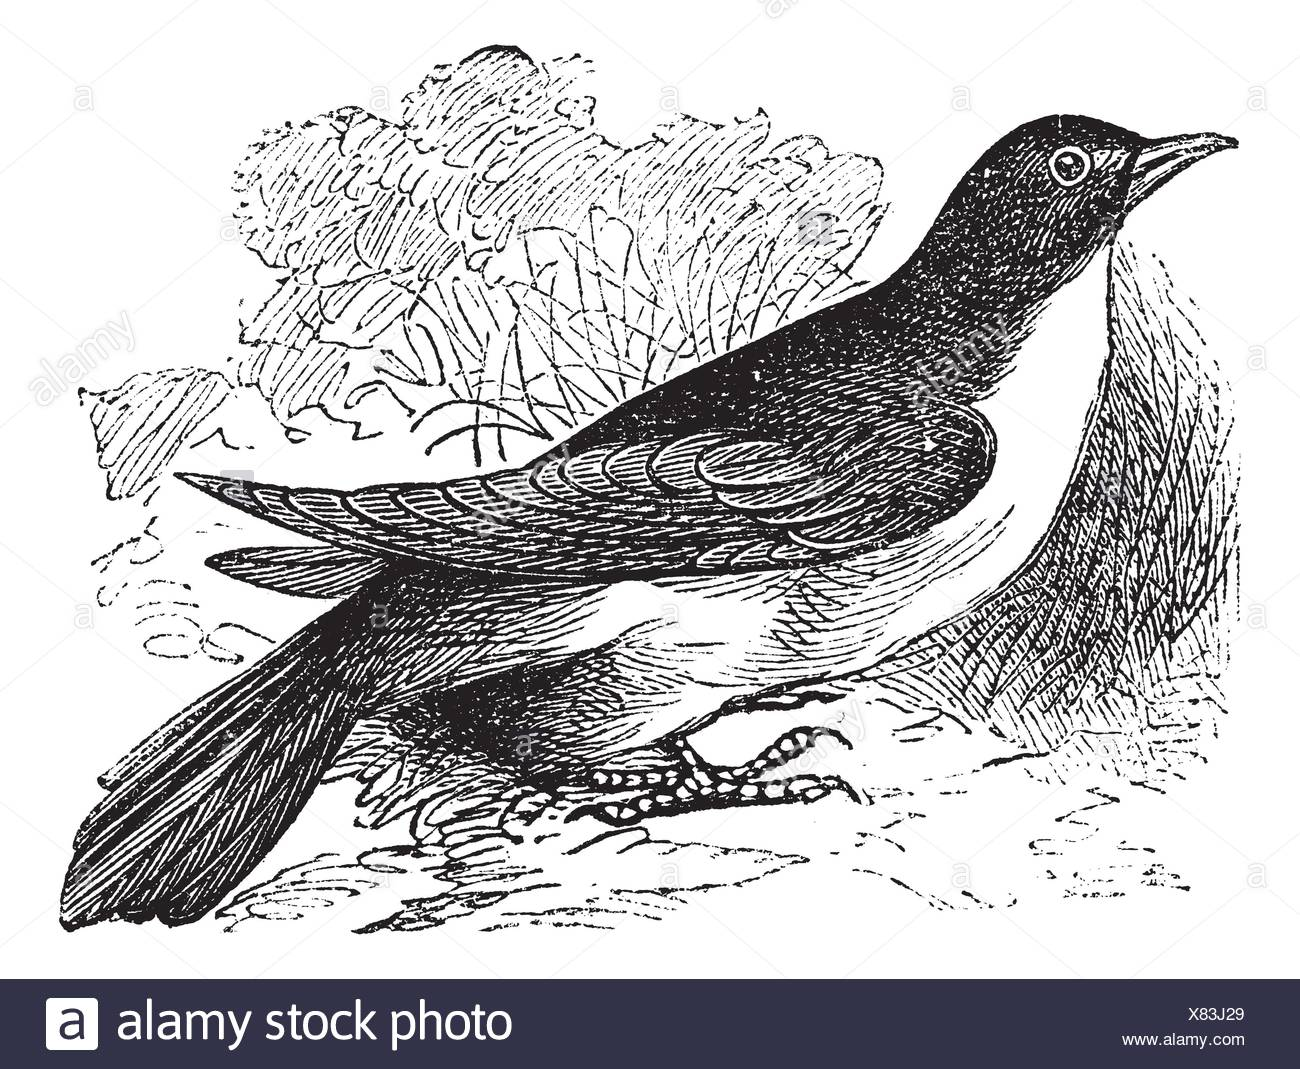 Yellow-billed Cuckoo or Rain Crow or Storm Crow or Coccyzus americanus, vintage engraving  Old engraved illustration of a Yellow-billed Cuckoo - Stock Image